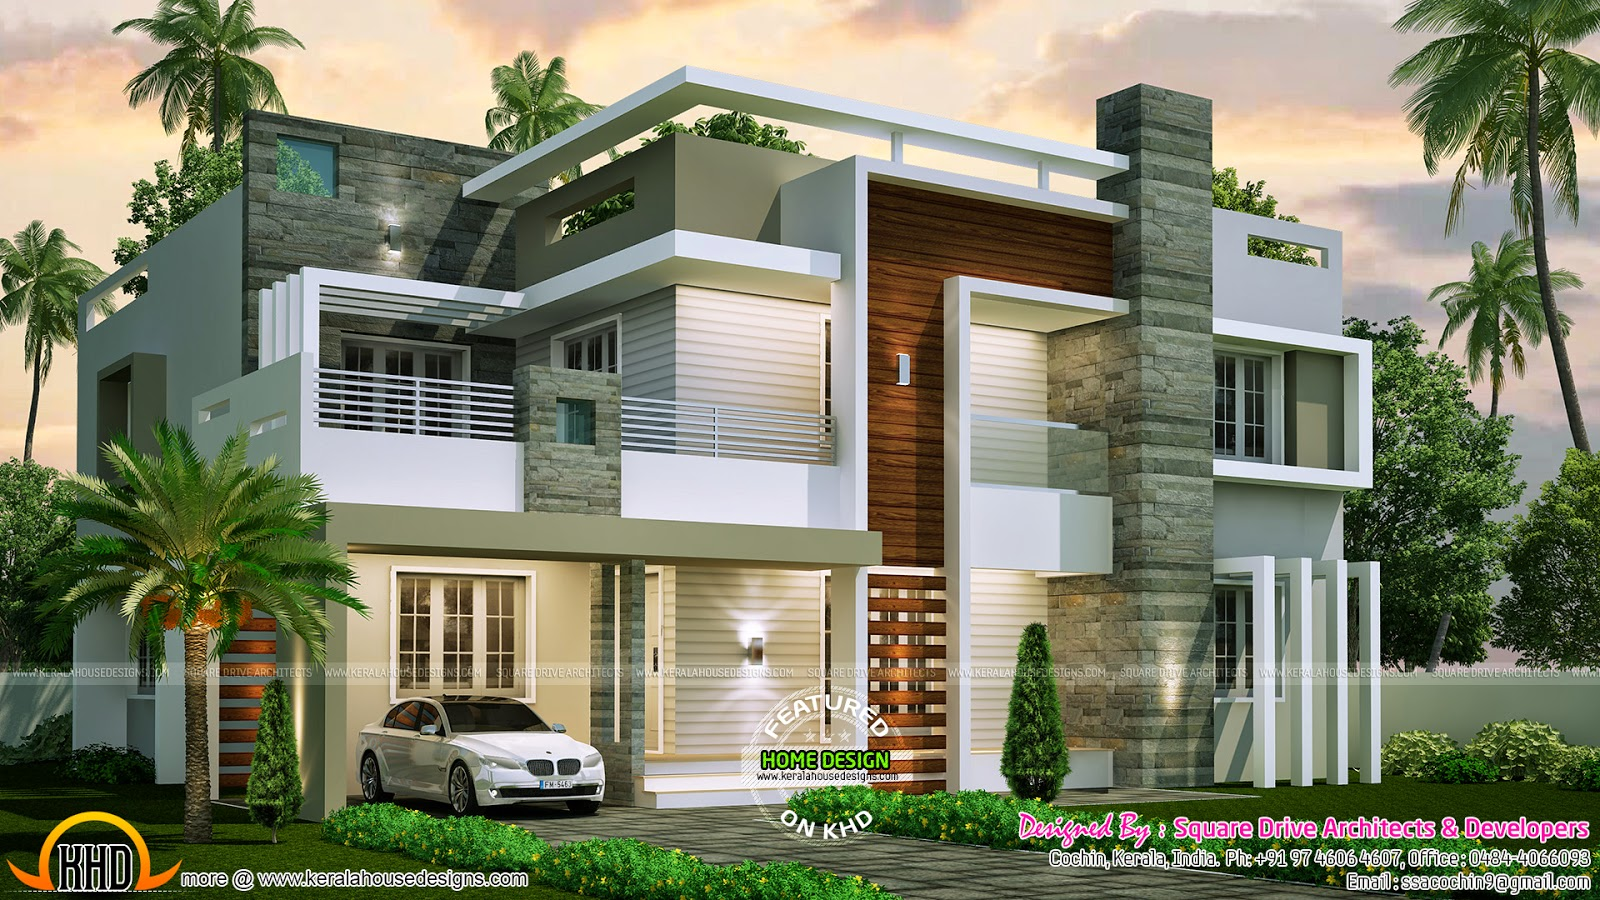 4 bedroom contemporary home design kerala home design for Small modern house plans with loft